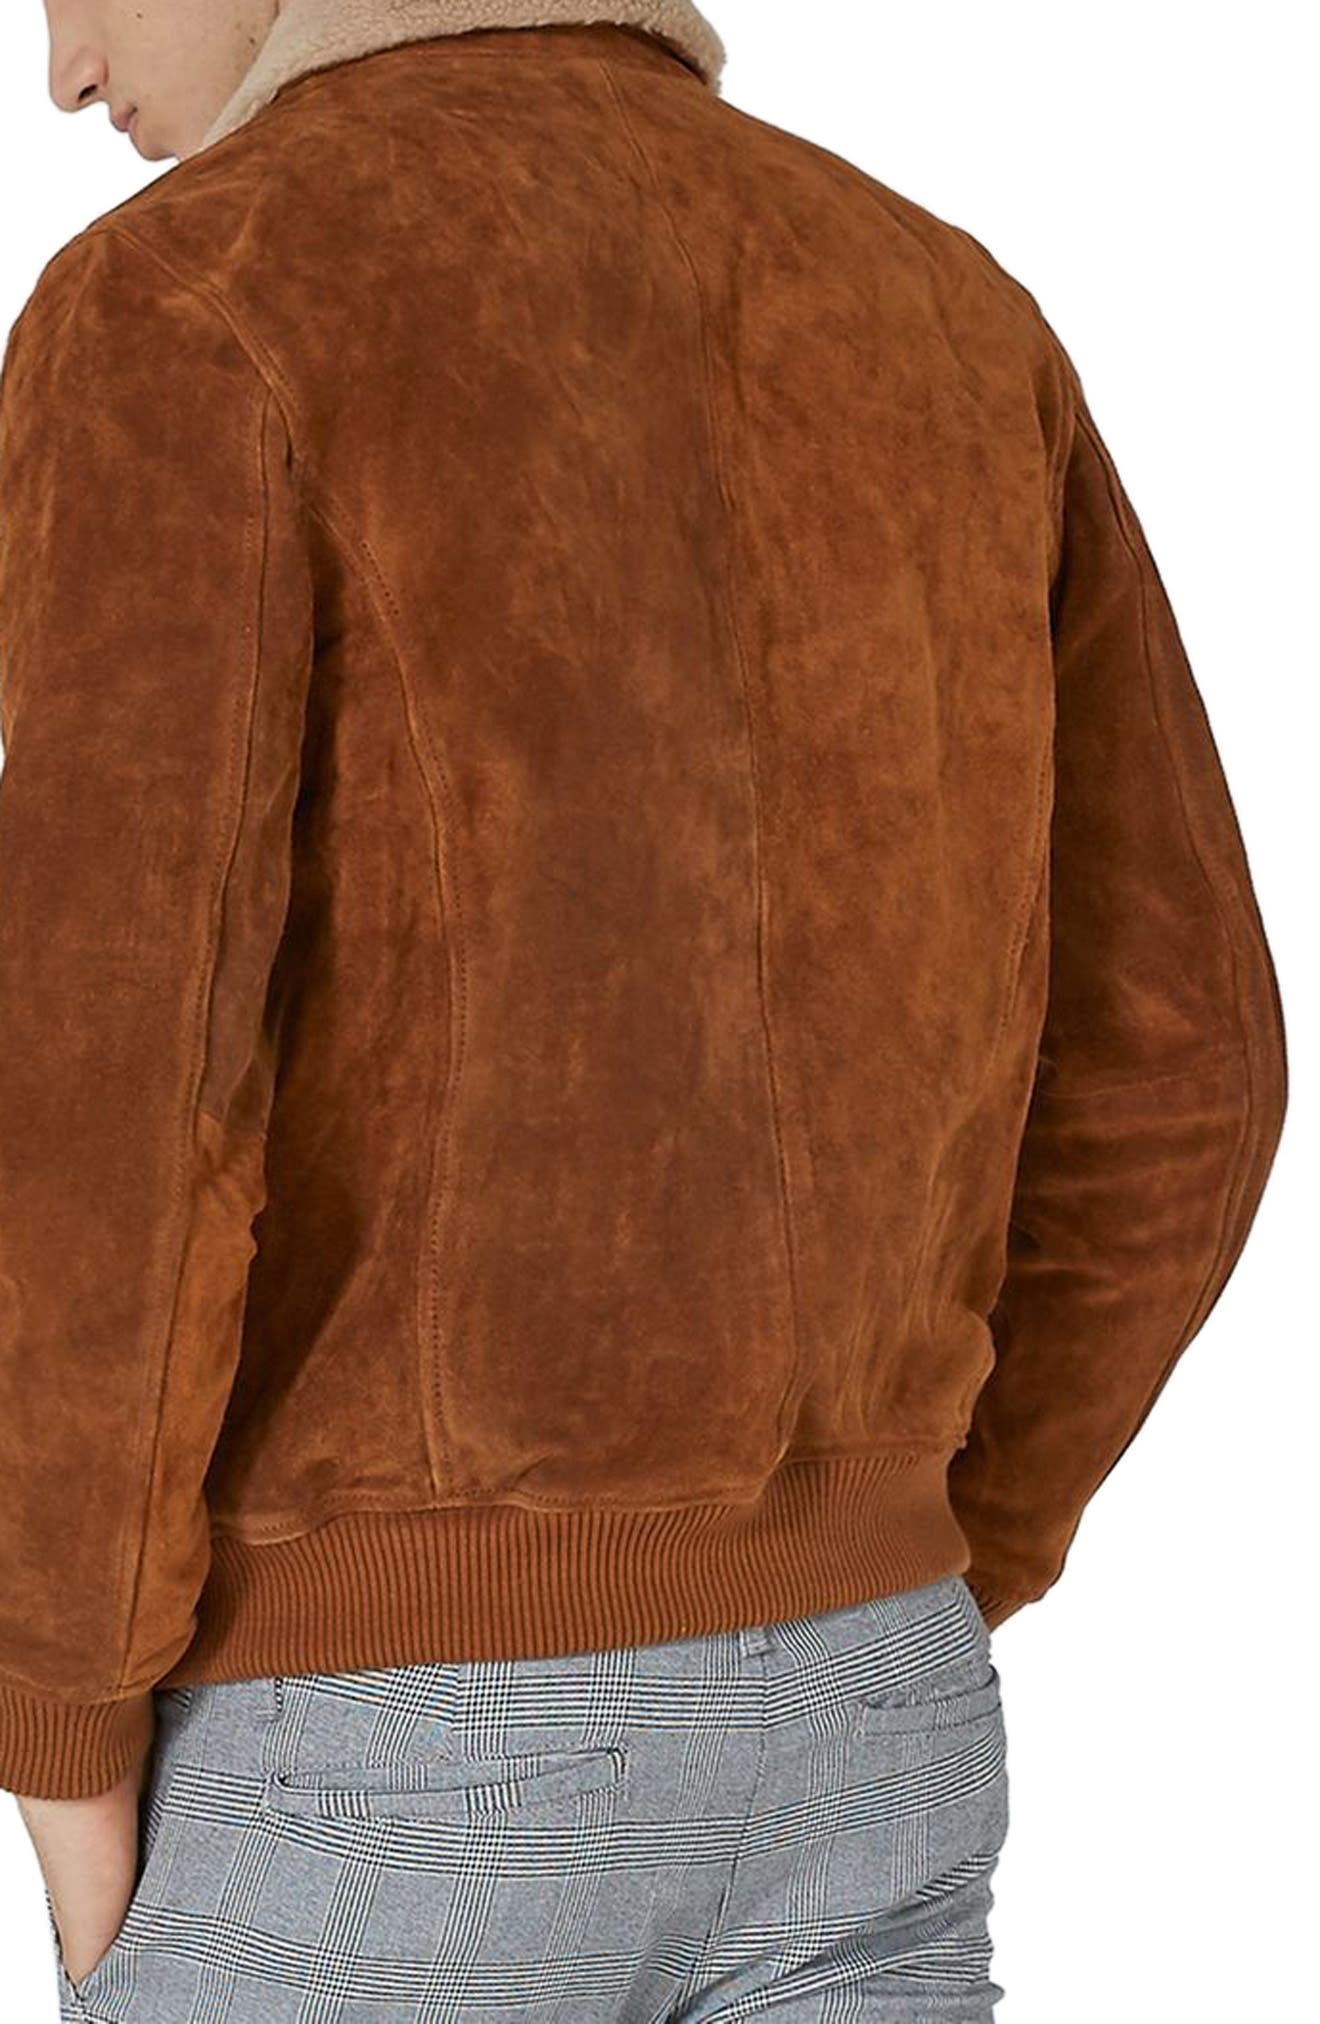 Borg Collar Suede Jacket,                             Alternate thumbnail 2, color,                             Brown